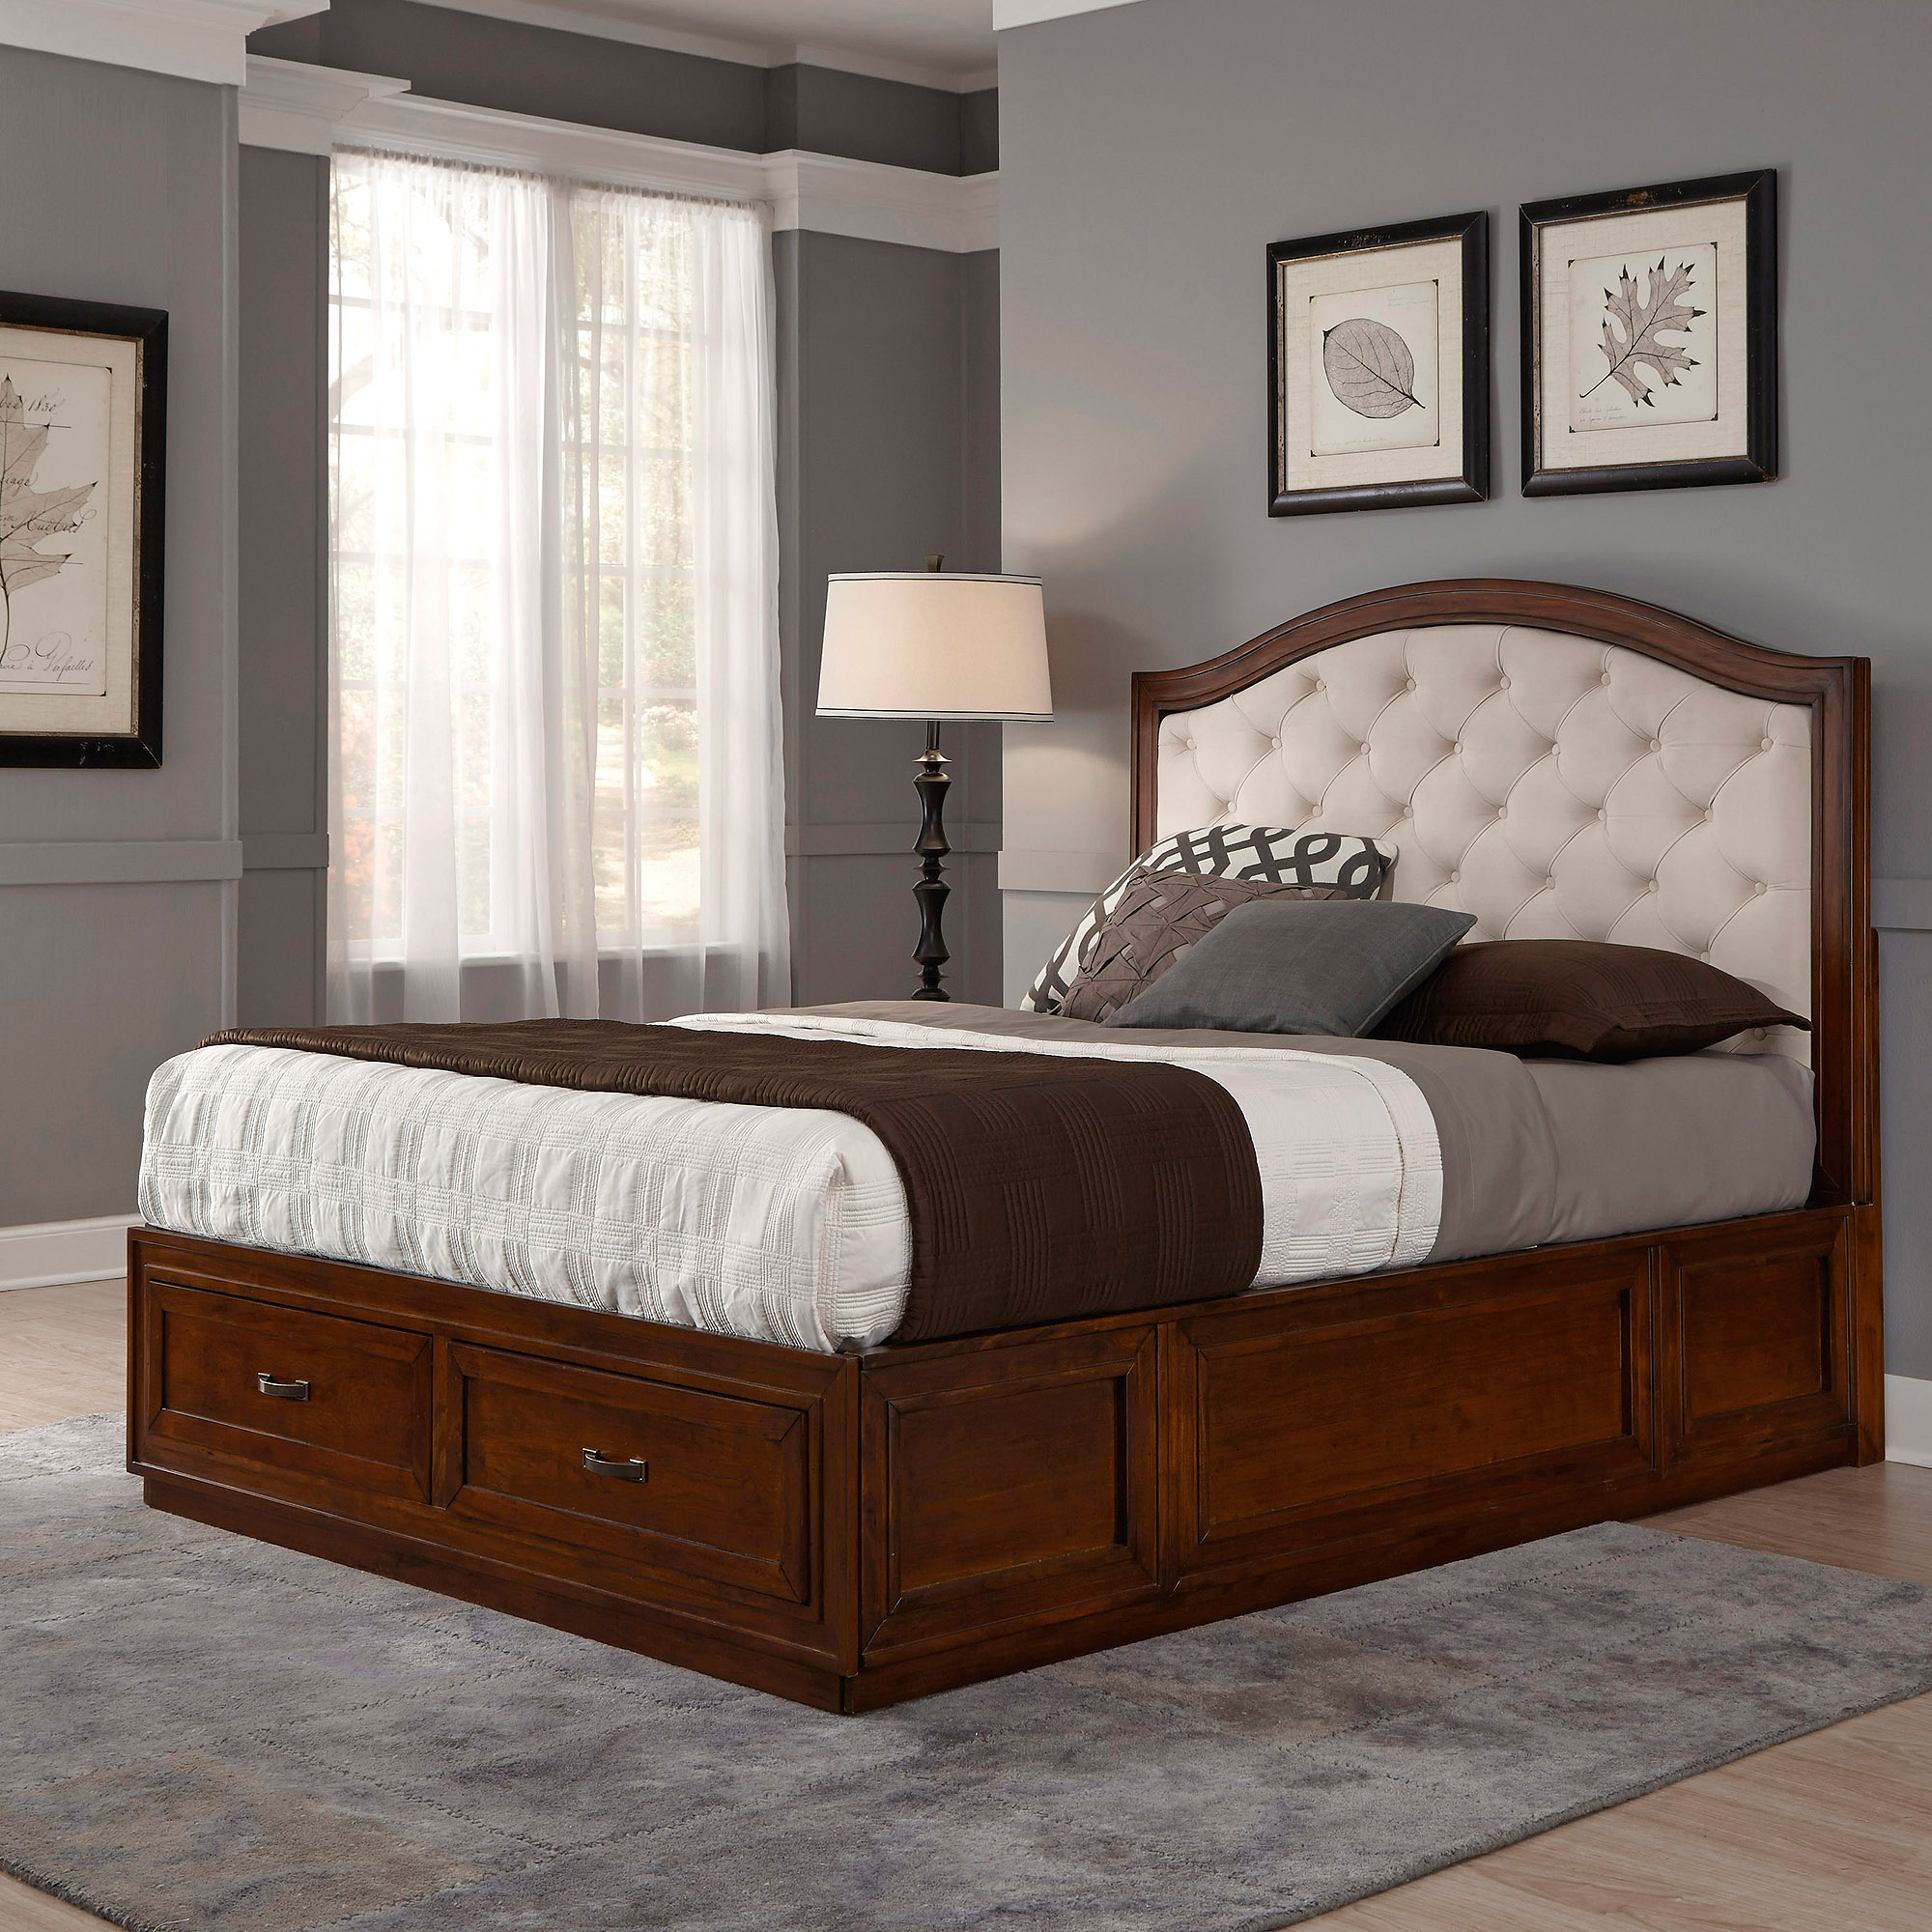 Duet King Tufted Diamond Camelback Bed, Oyster Microfiber